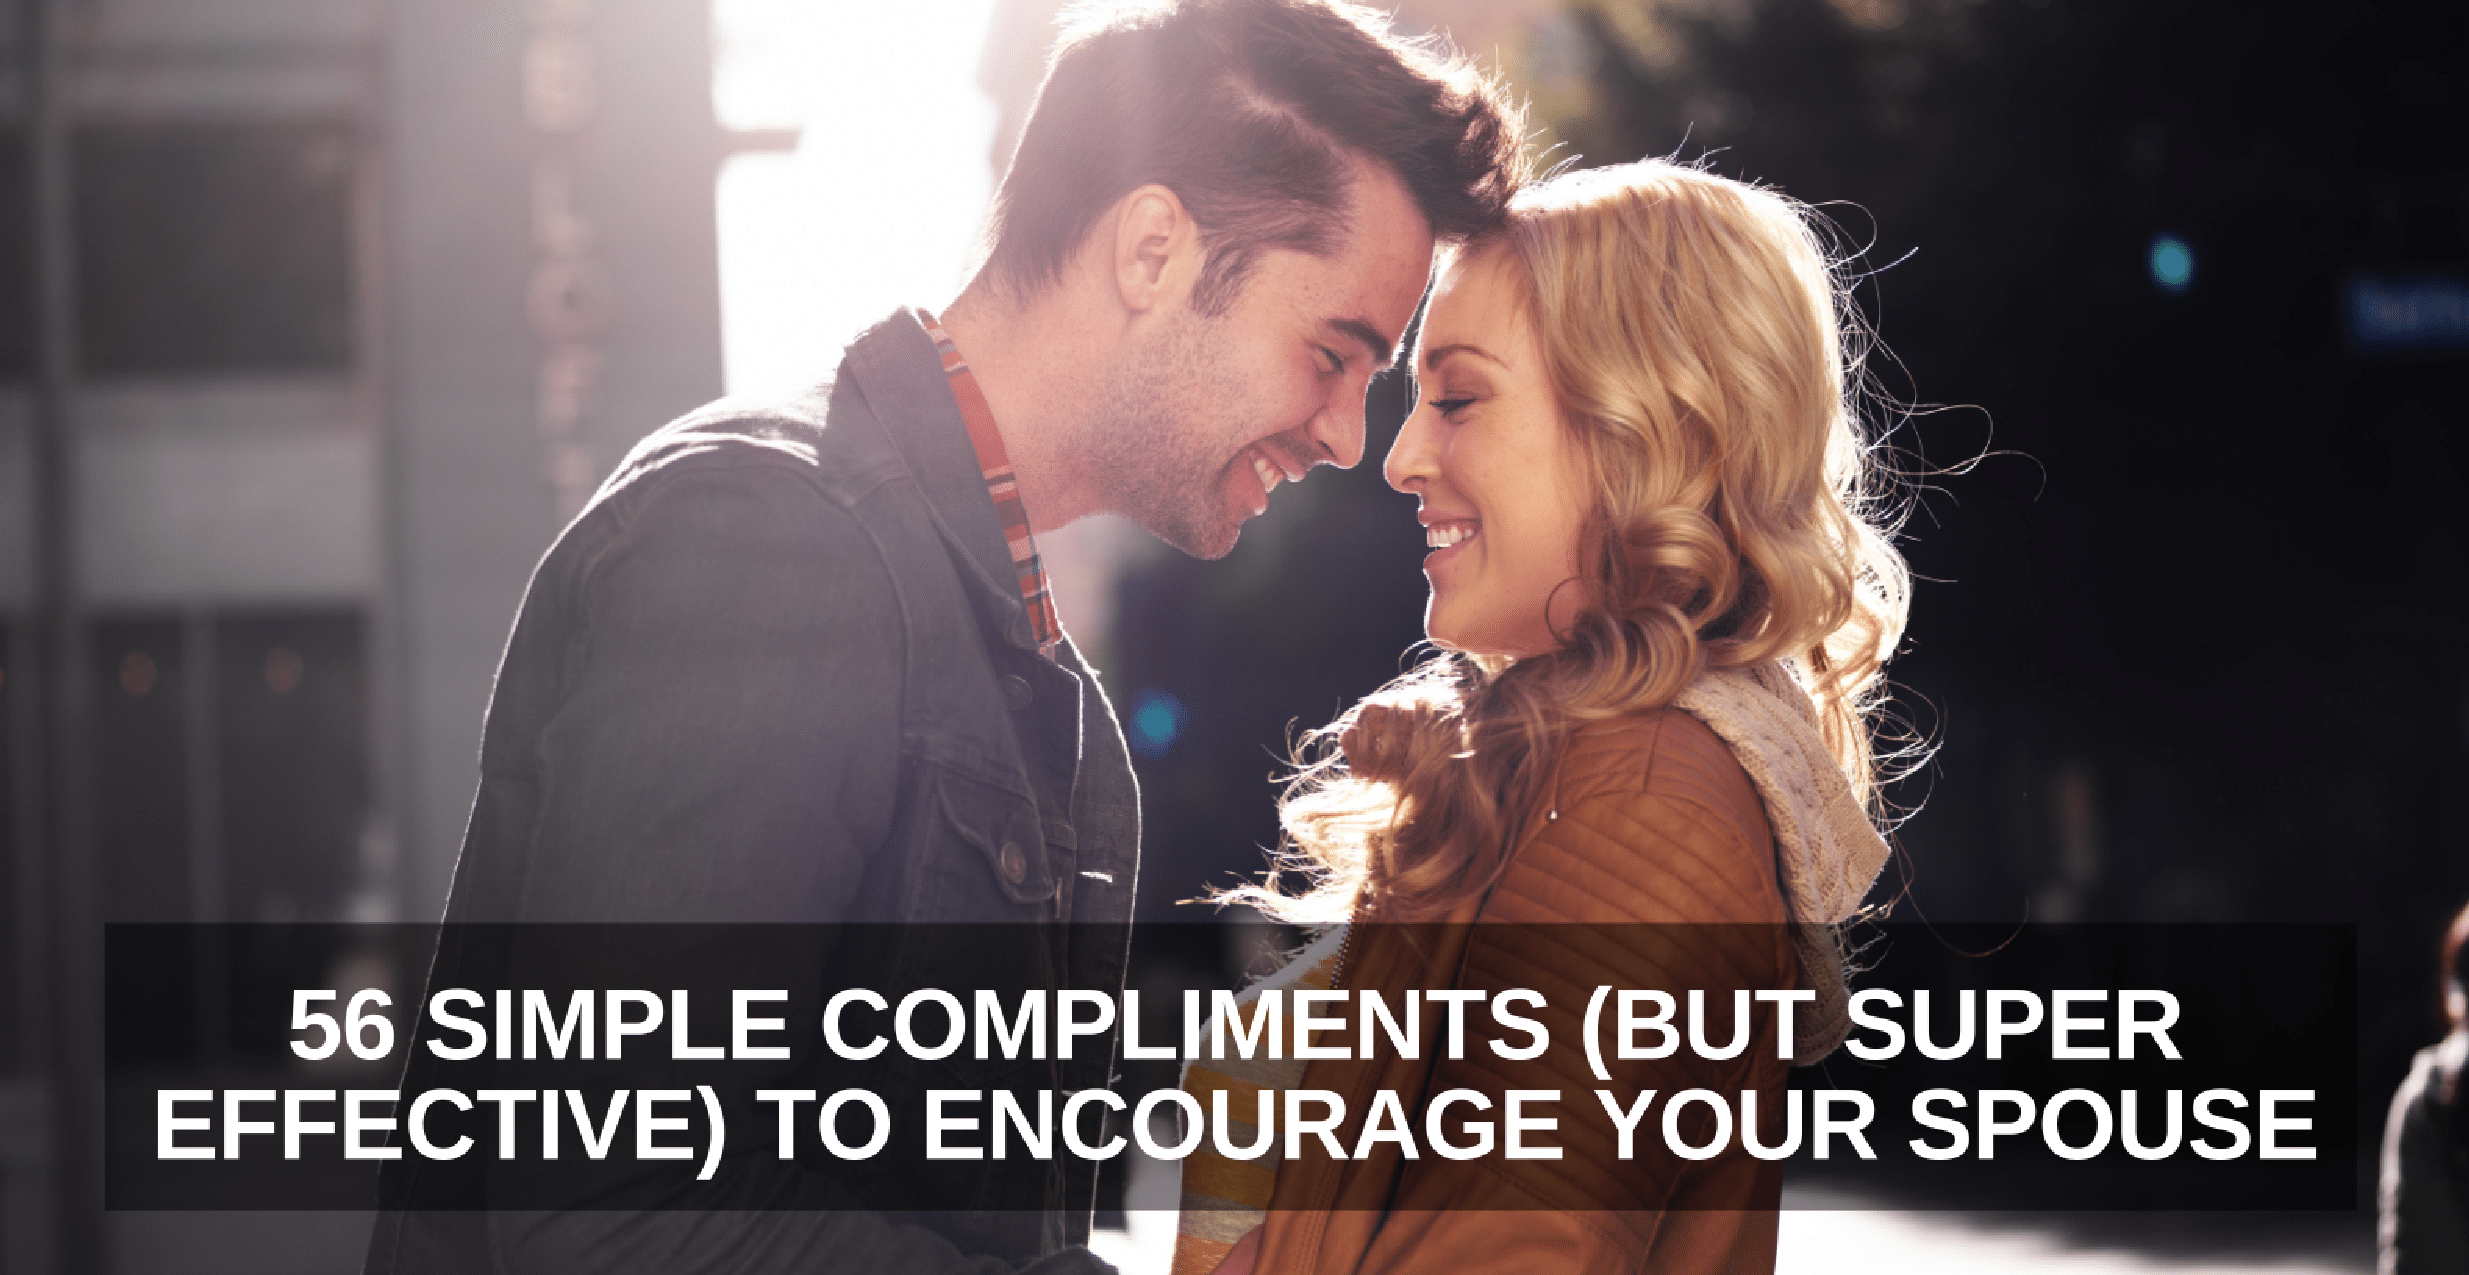 Husband and wife complement each other